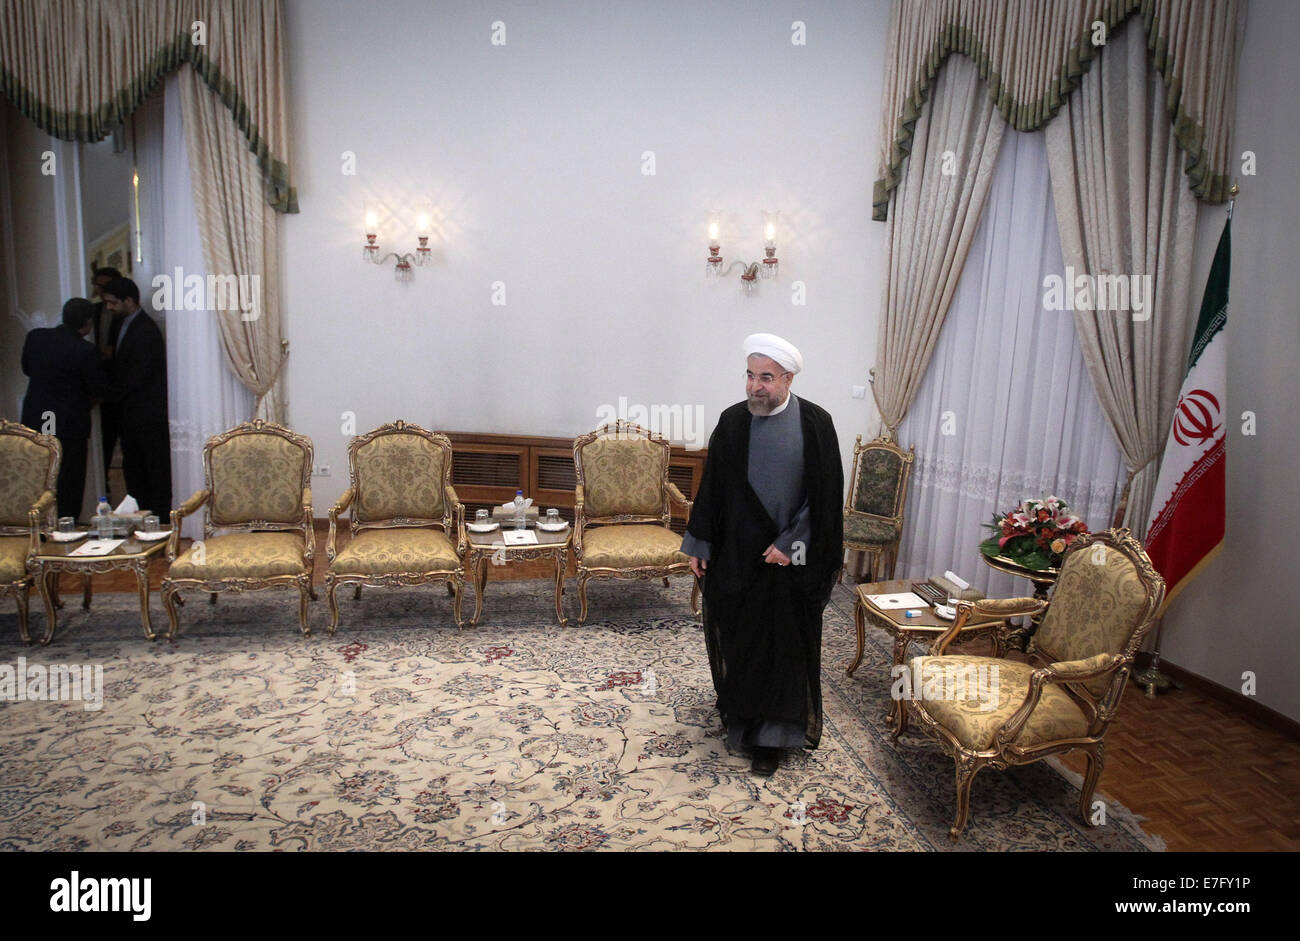 Tehran, Iran. 16th Sep, 2014. Iranian President Hassan Rouhani (R) waits for Ri Su Yong (not in the picture), Foreign Stock Photo